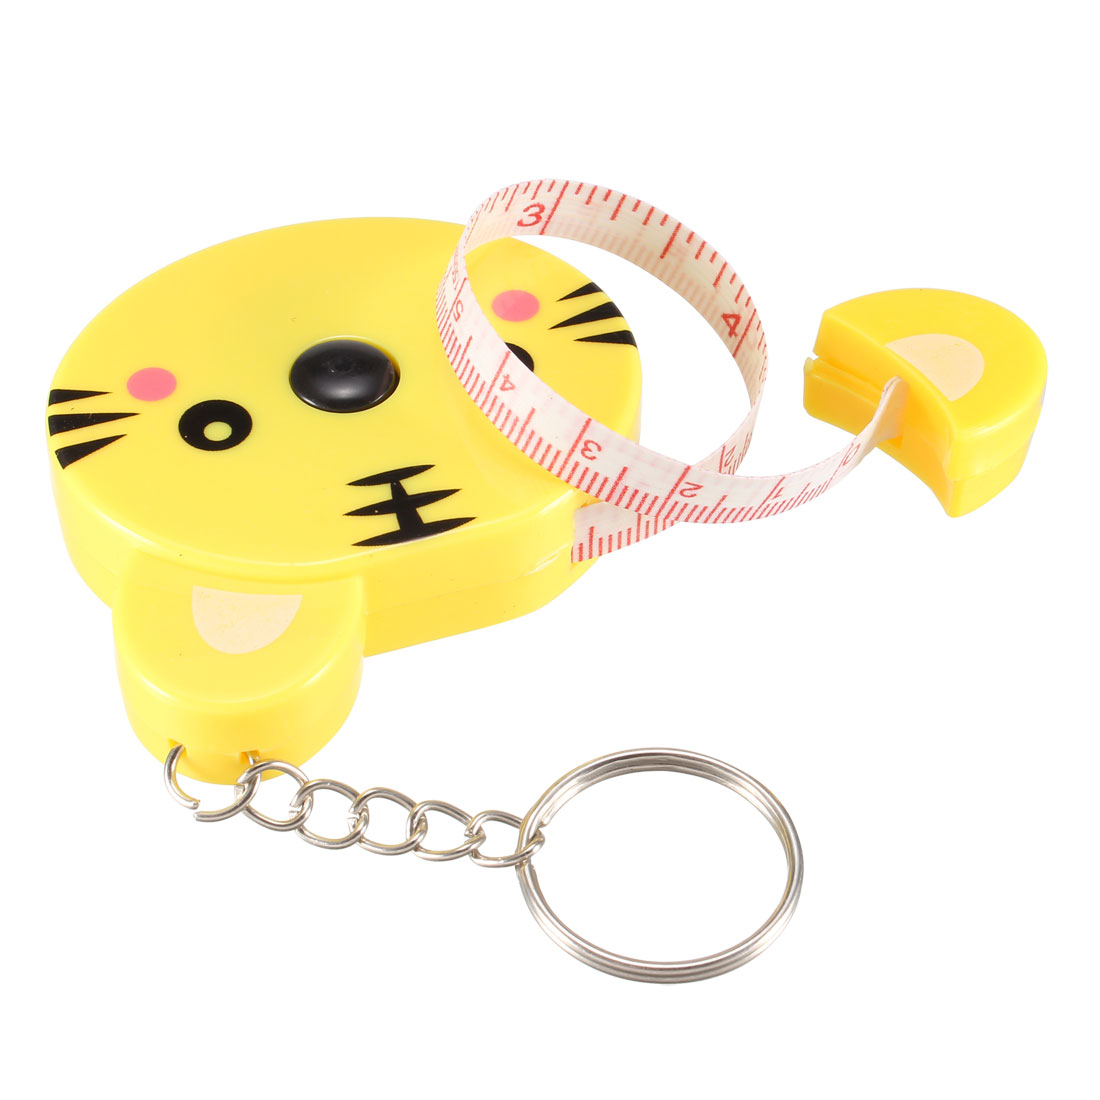 60 Inch Measuring Tape Soft Dual Sided with Keychain 1.5 Meter Cartoon Yellow